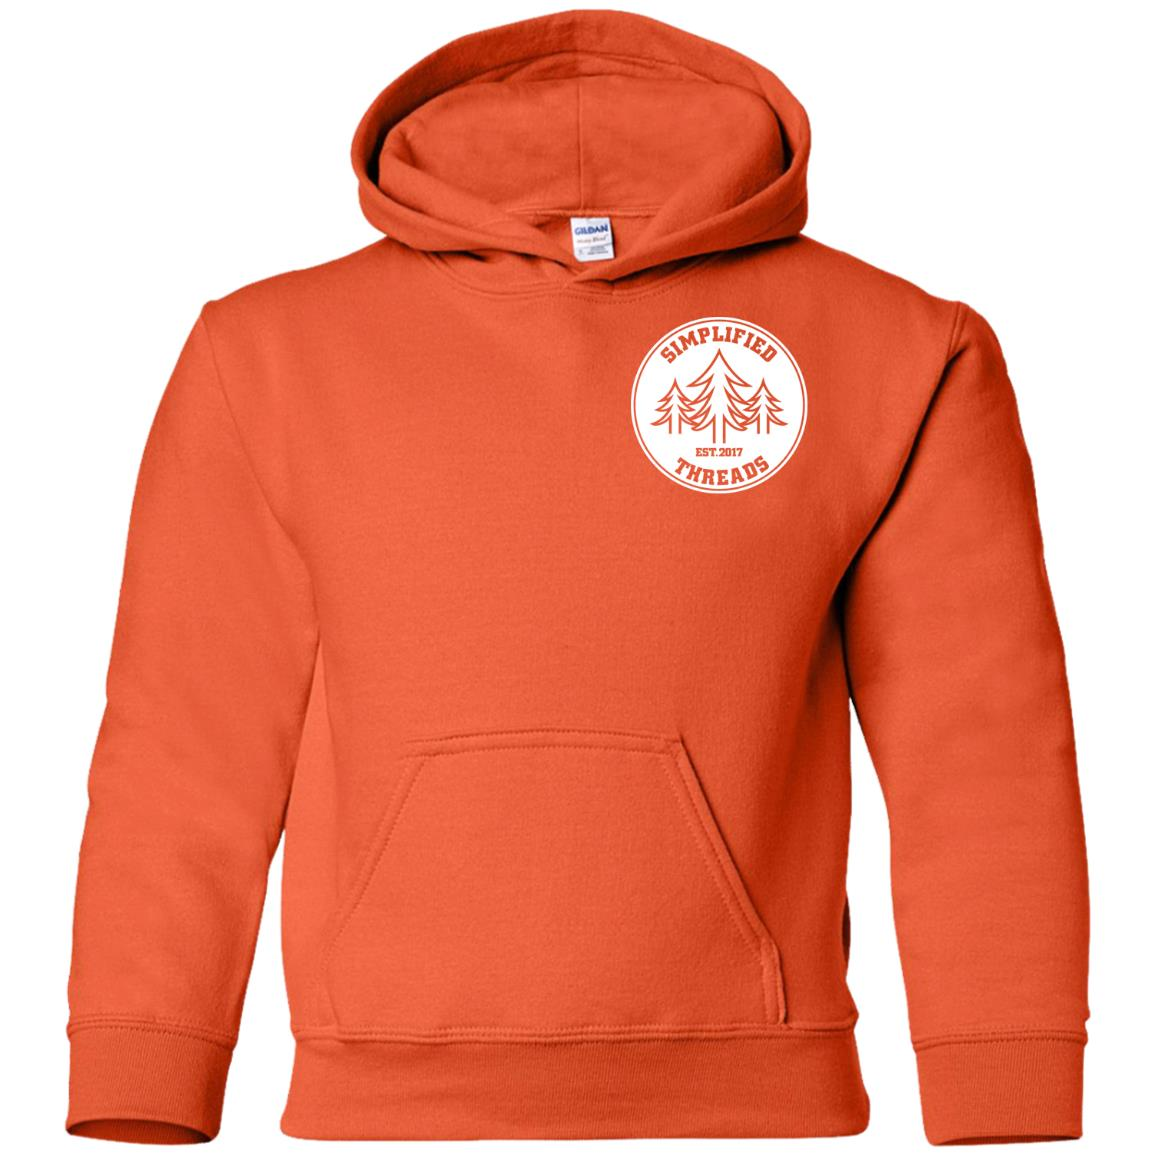 Kids Small Dig Your Roots Logo Hoodie